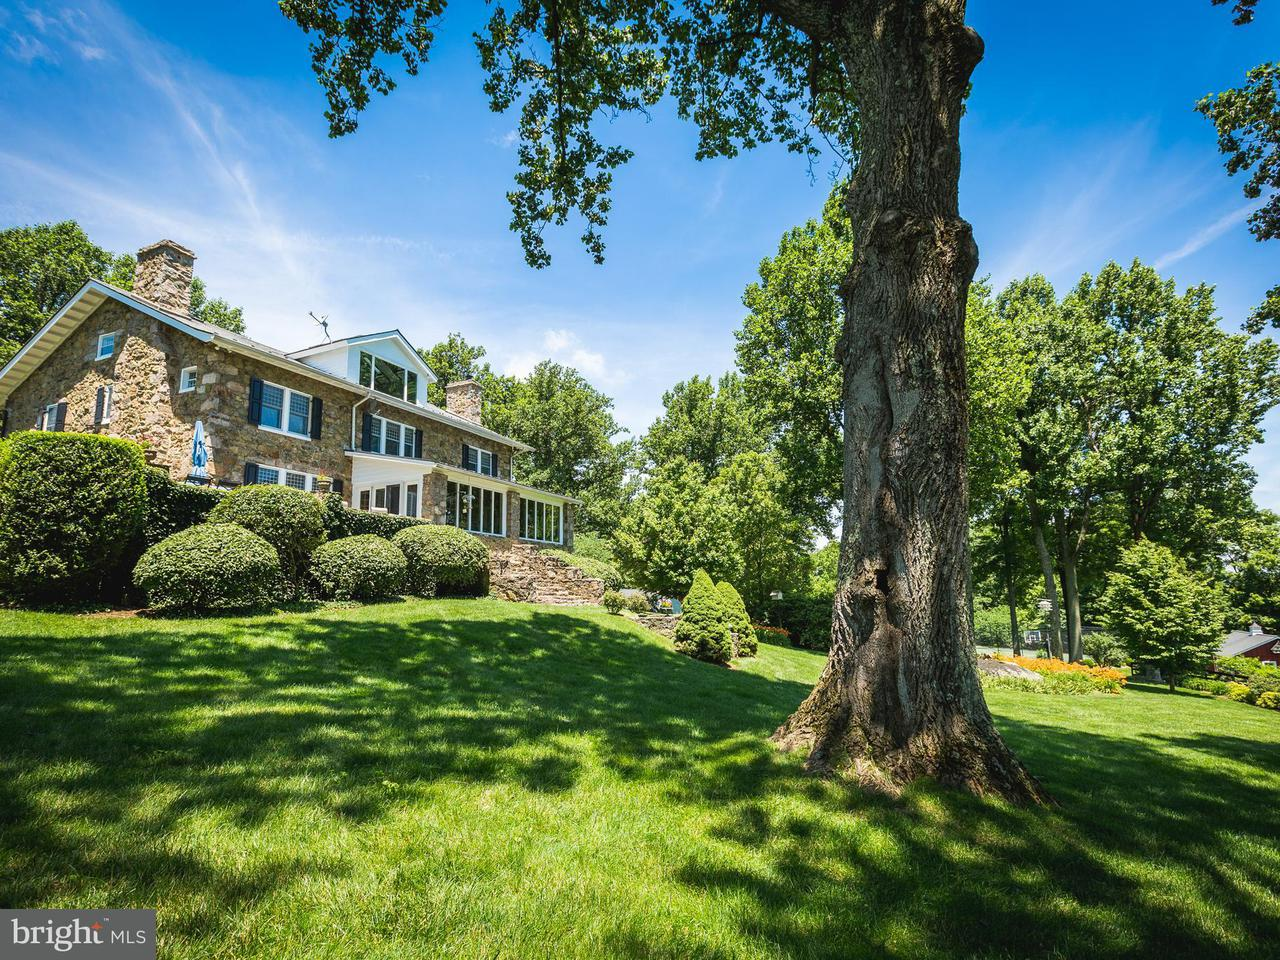 luxury real estate listings in bluemont virginia united states